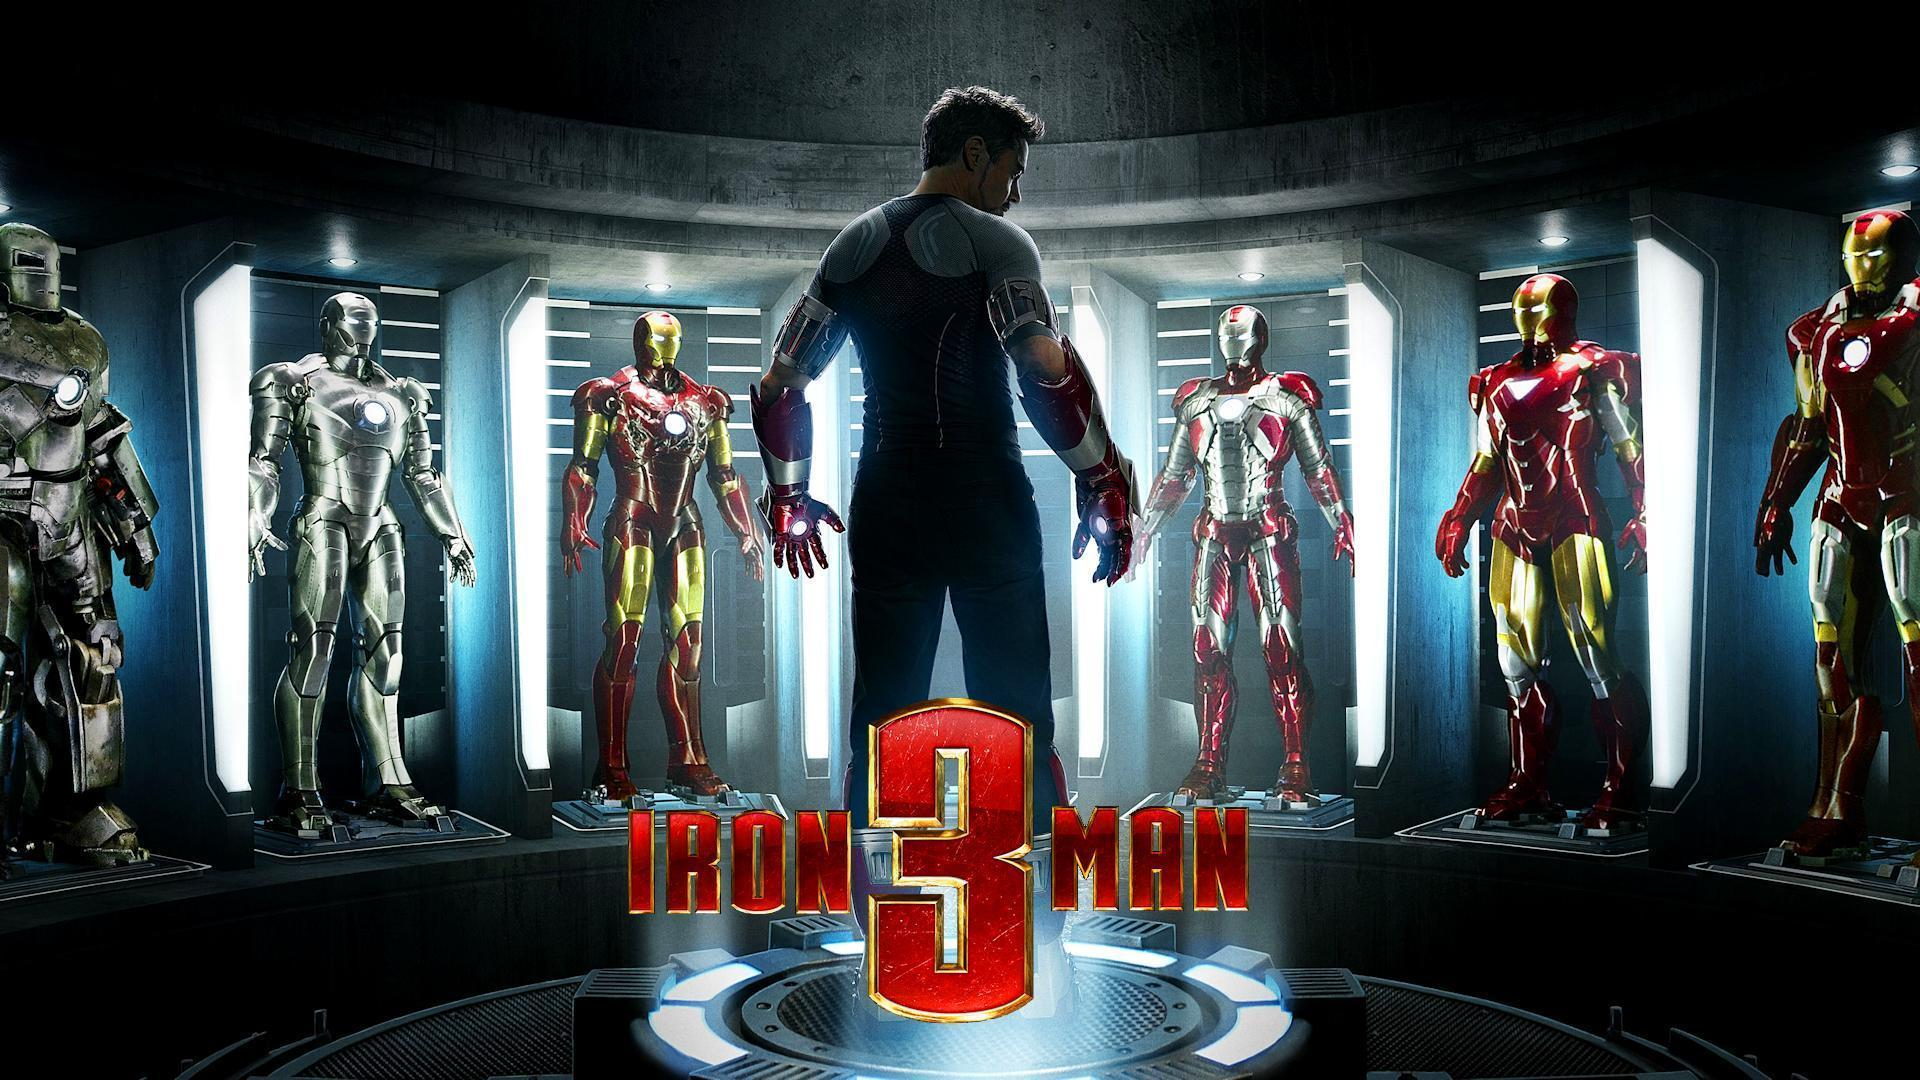 Iron Man 3 Suits of Armor Exclusive HD Wallpapers